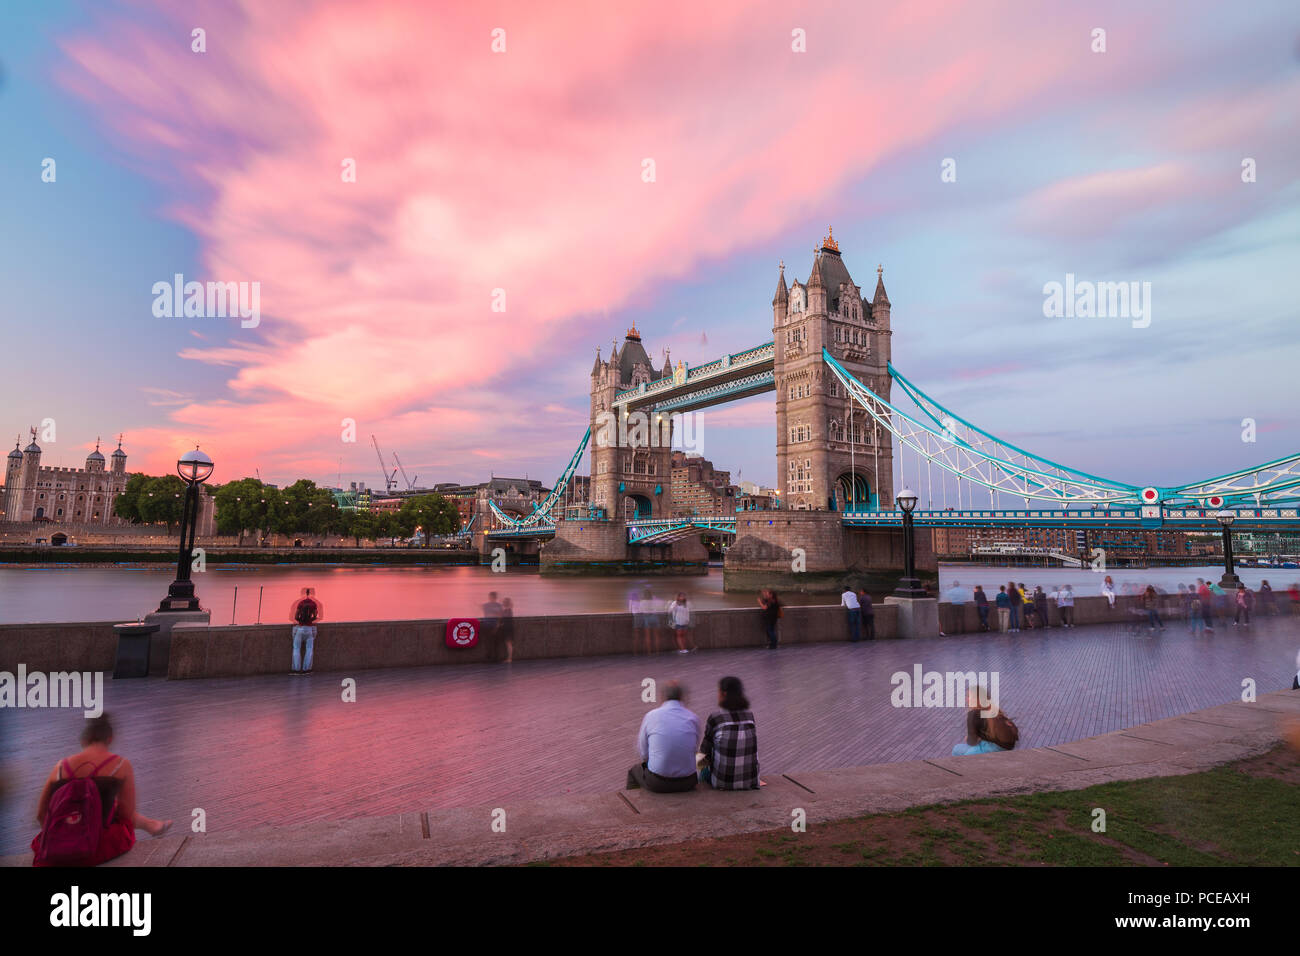 london, united kingdom: the world famous tower bridge shot from different angle and prospective - Stock Image